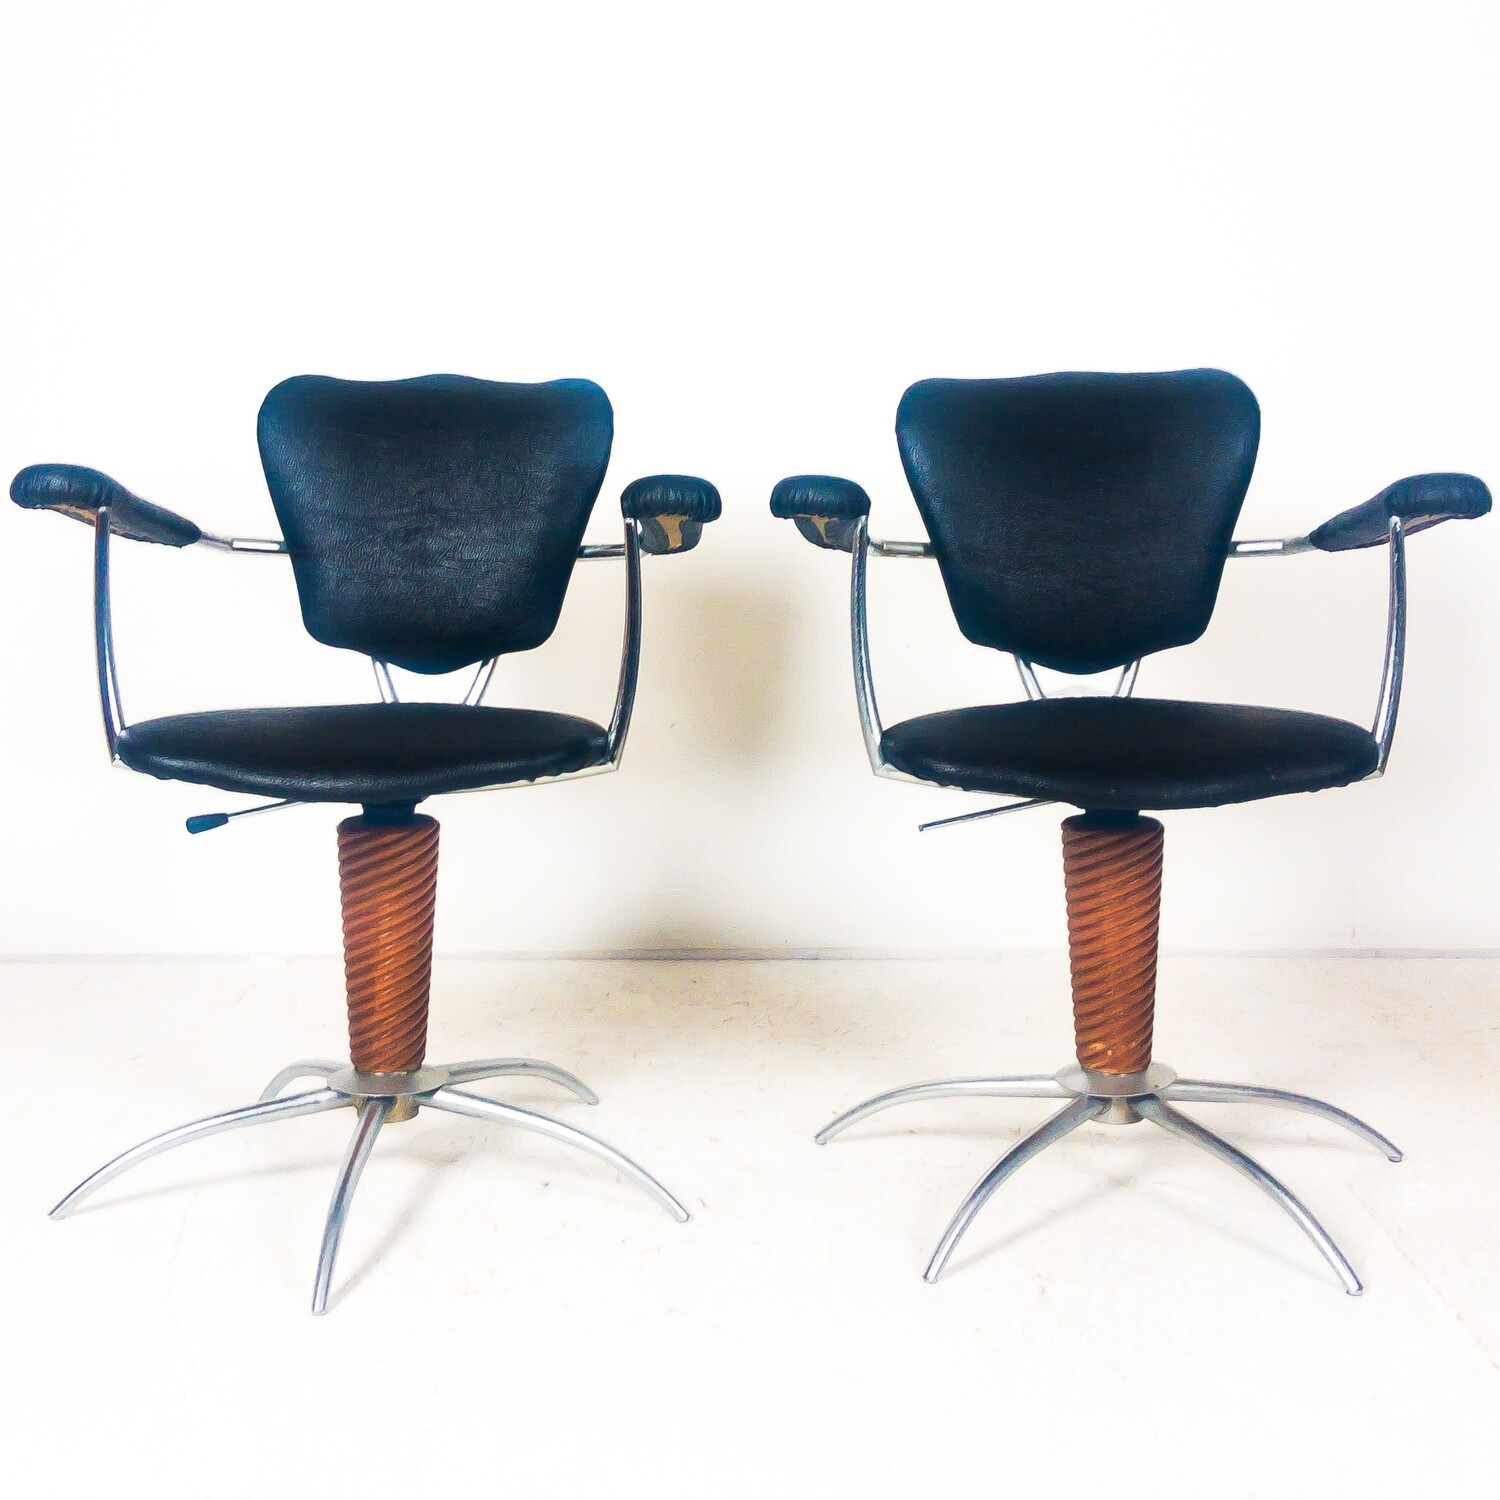 Set of two Sky chairs